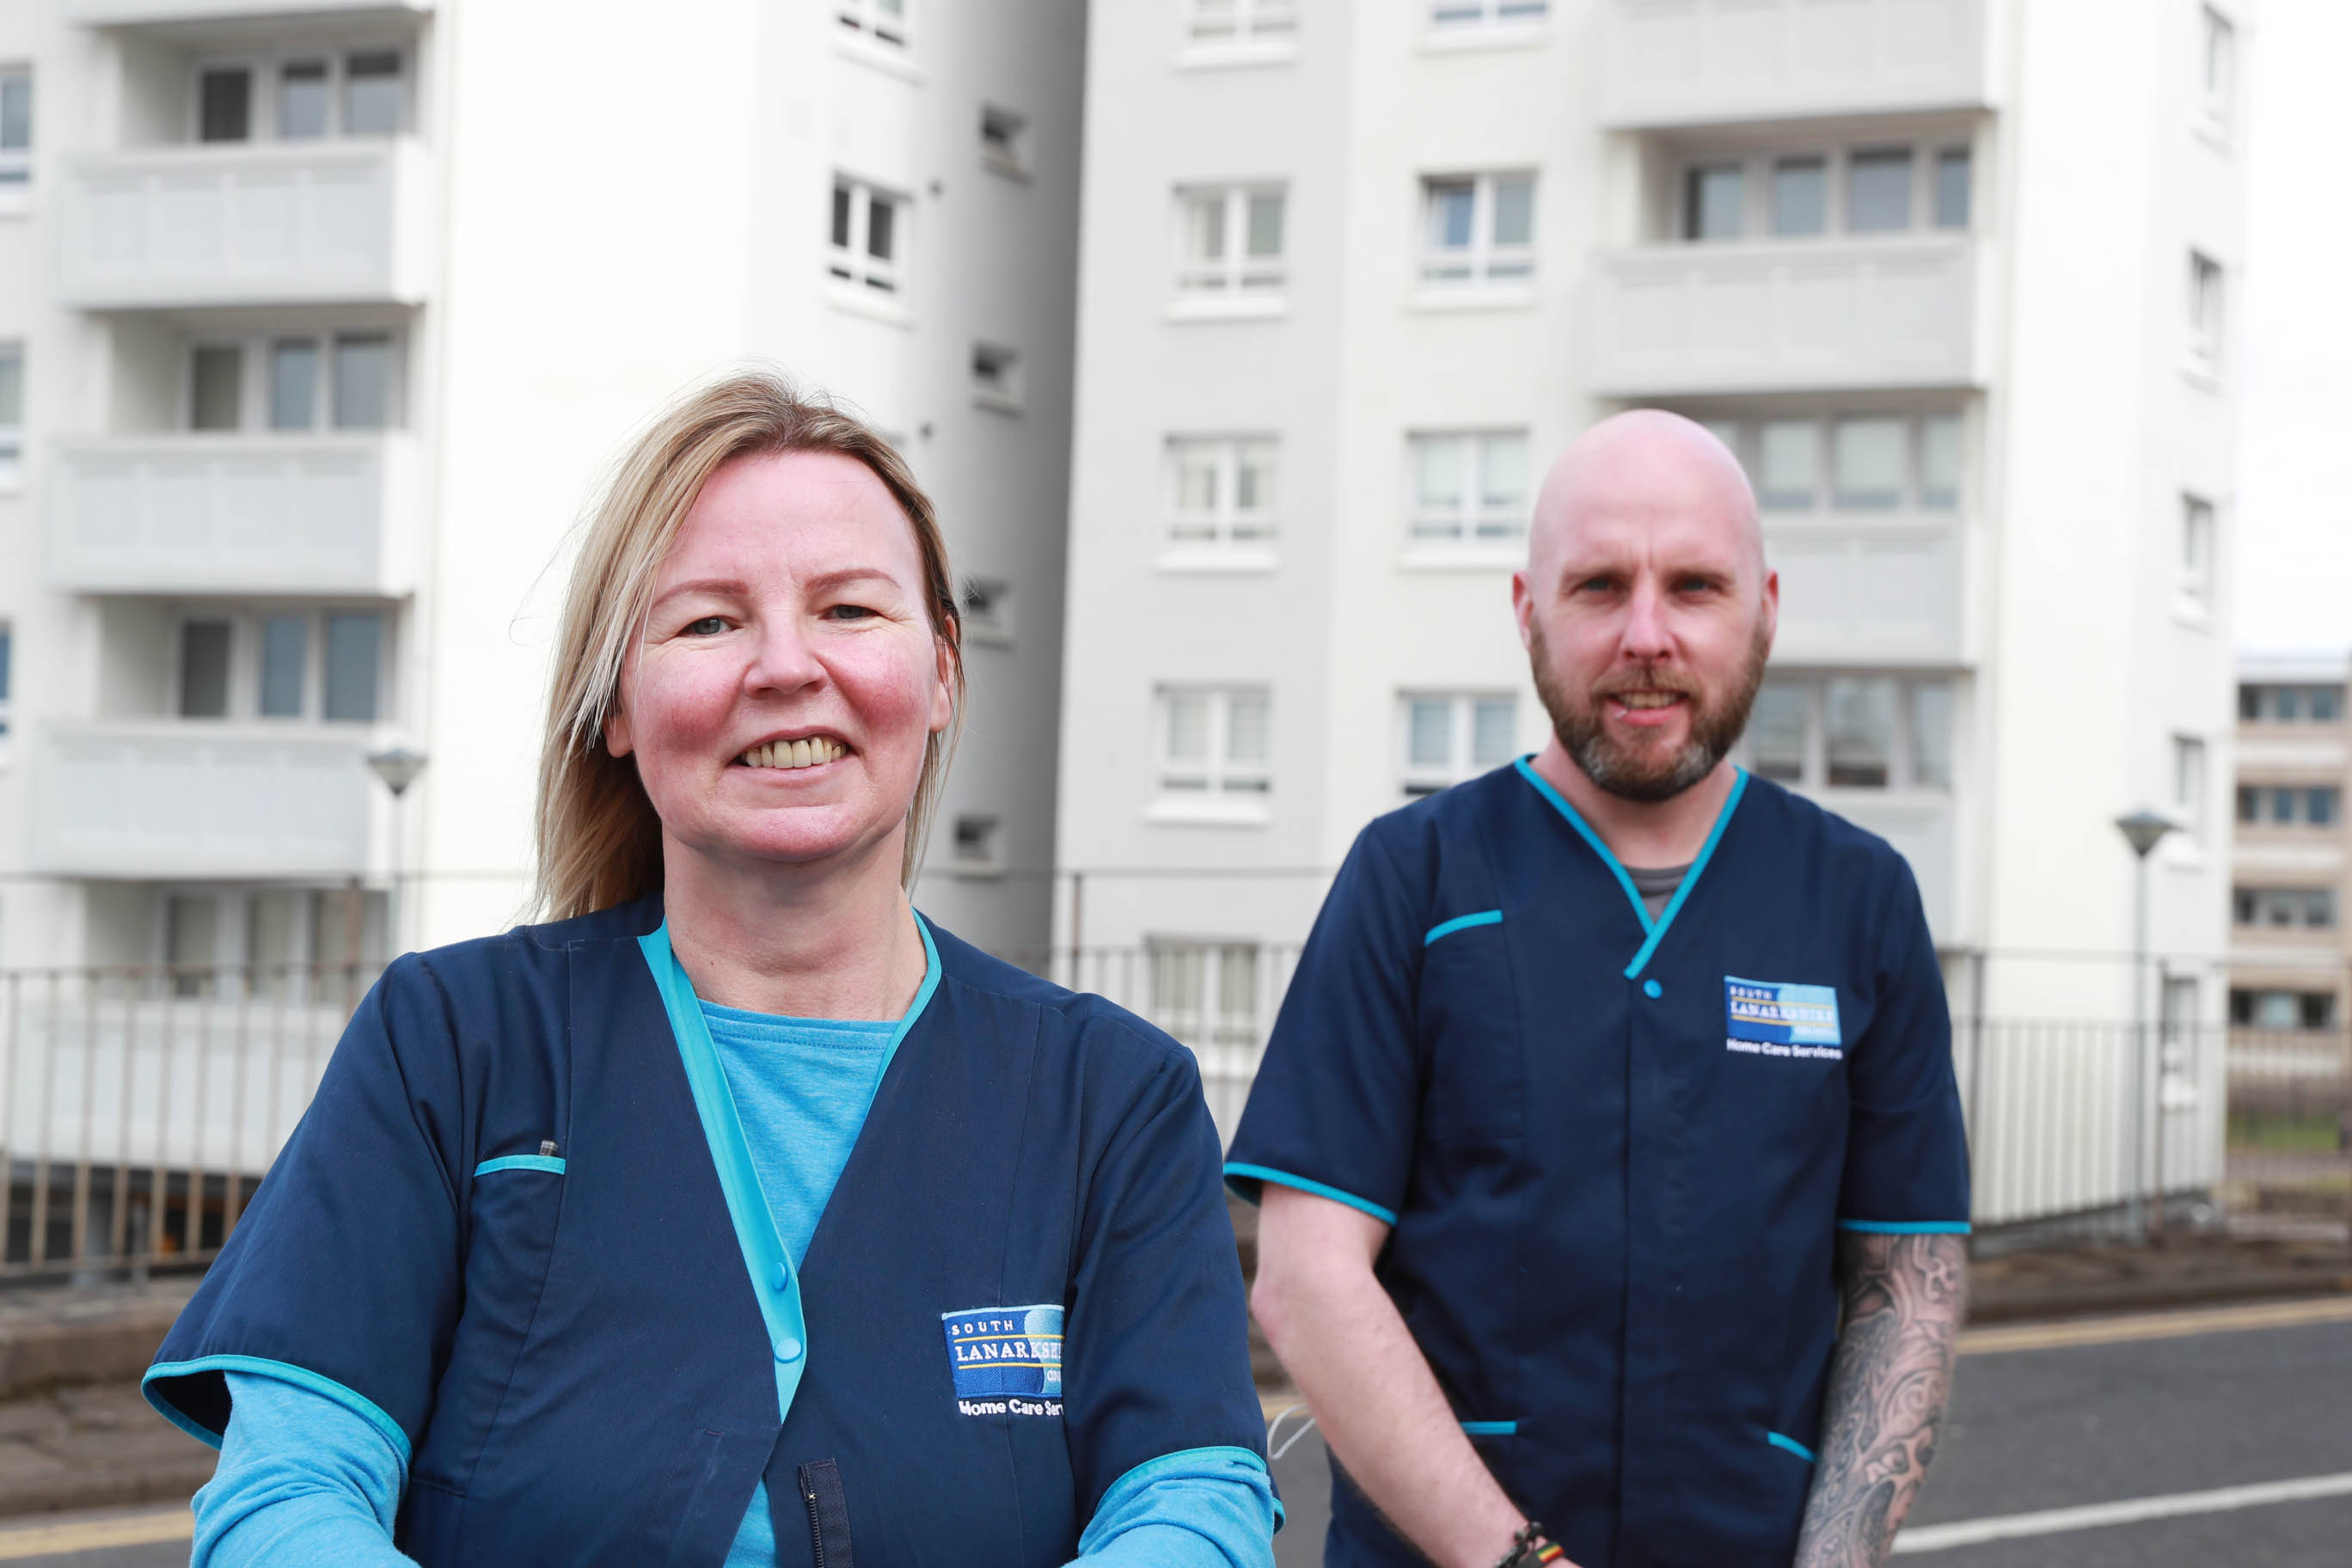 Praise for dedicated Care at Home staff